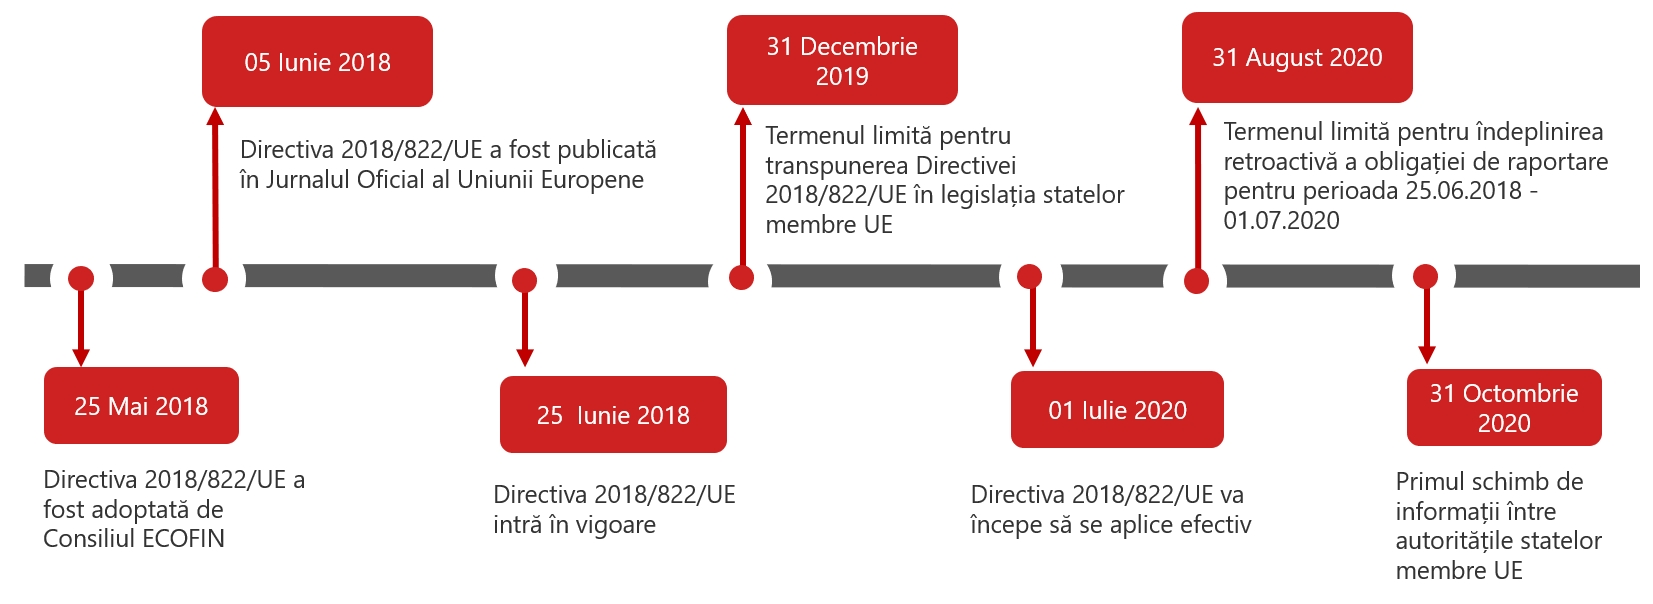 timeline dac6 mandatory disclosure reporting cross border transactions